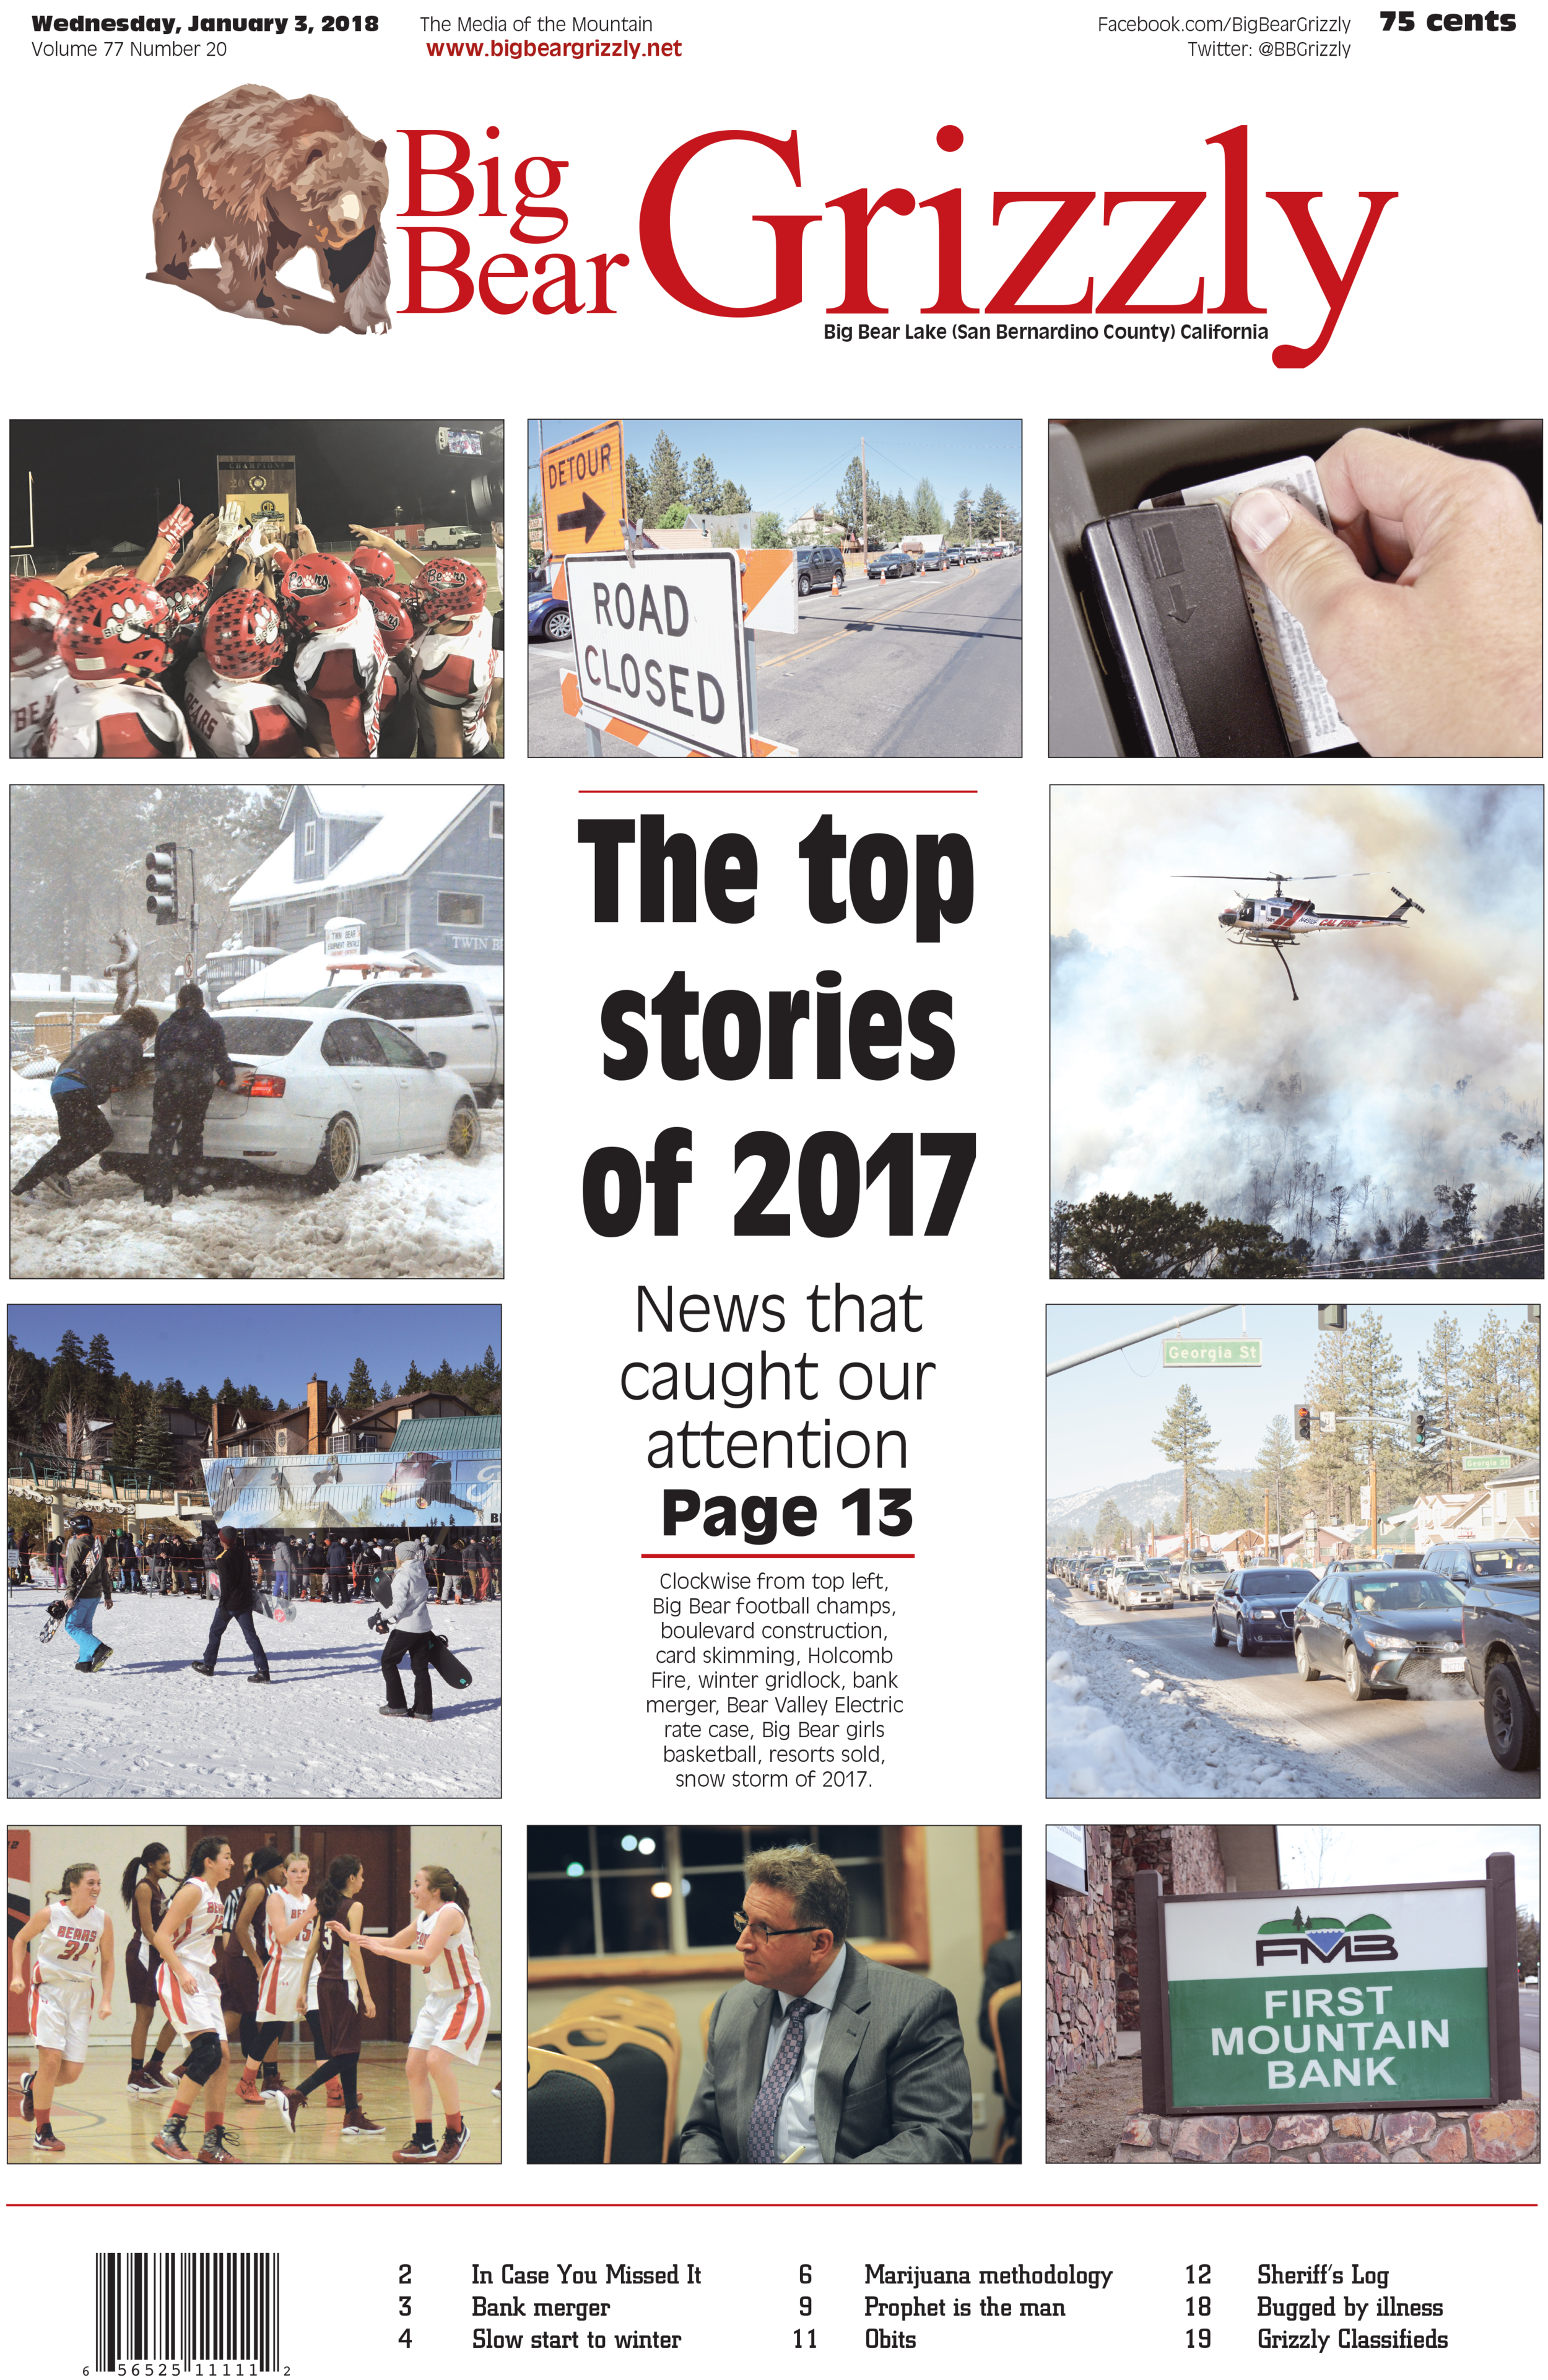 Natalie co-desinged the Jan. 3, 2018, cover of the Big Bear Grizzly with Senior Editor Kathy Portie. This edition featured a special cover with photos from the most important stories of 2017.